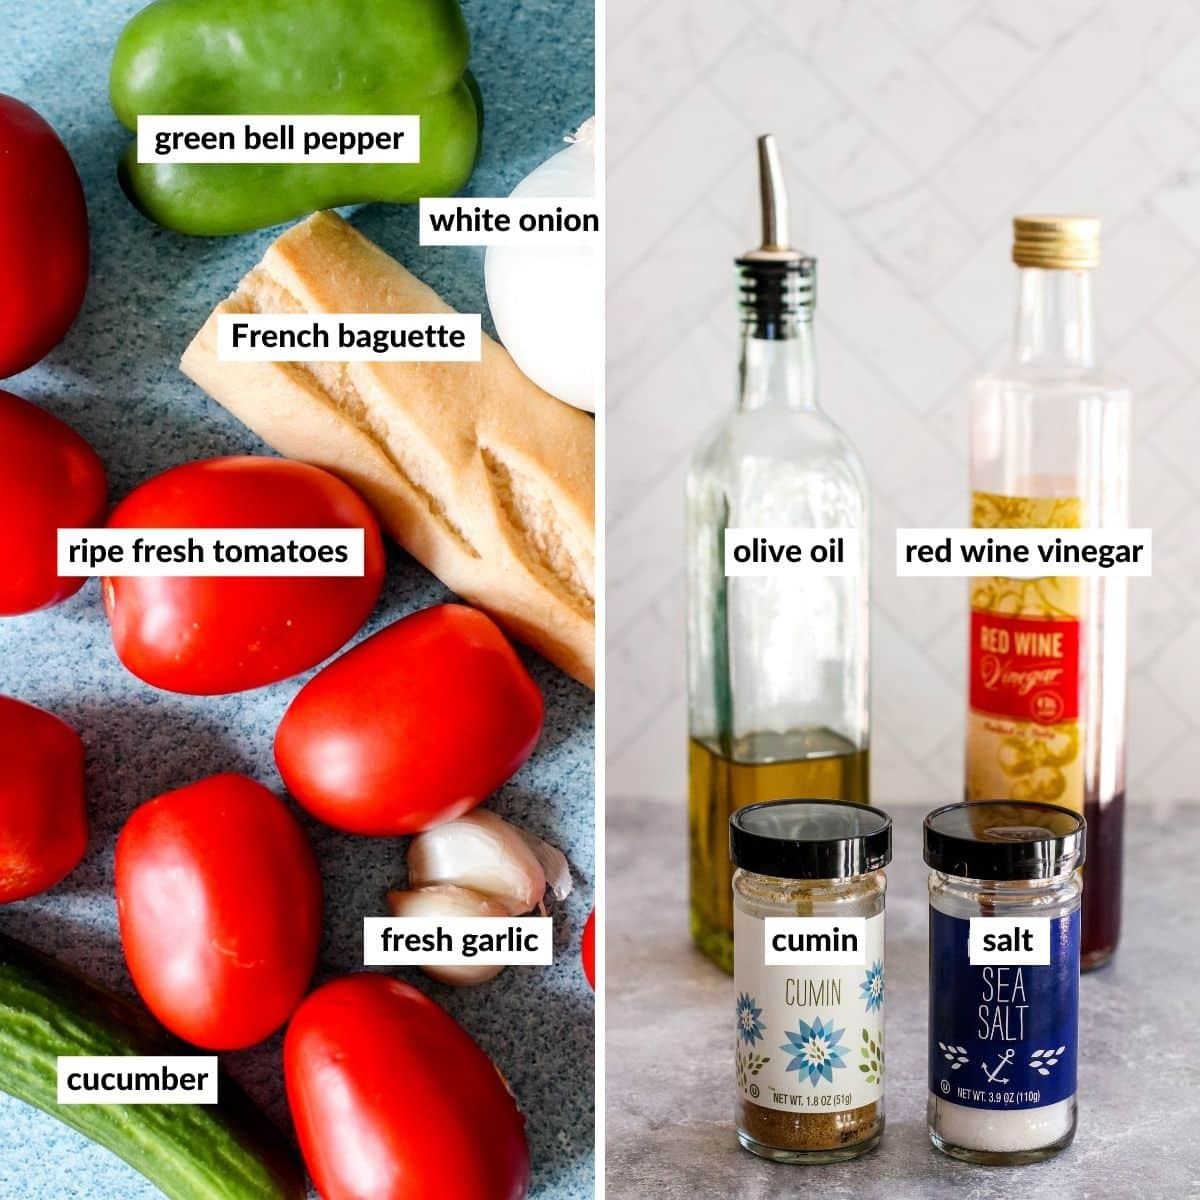 Collage of two images showing the labeled ingredients needed for making this recipe